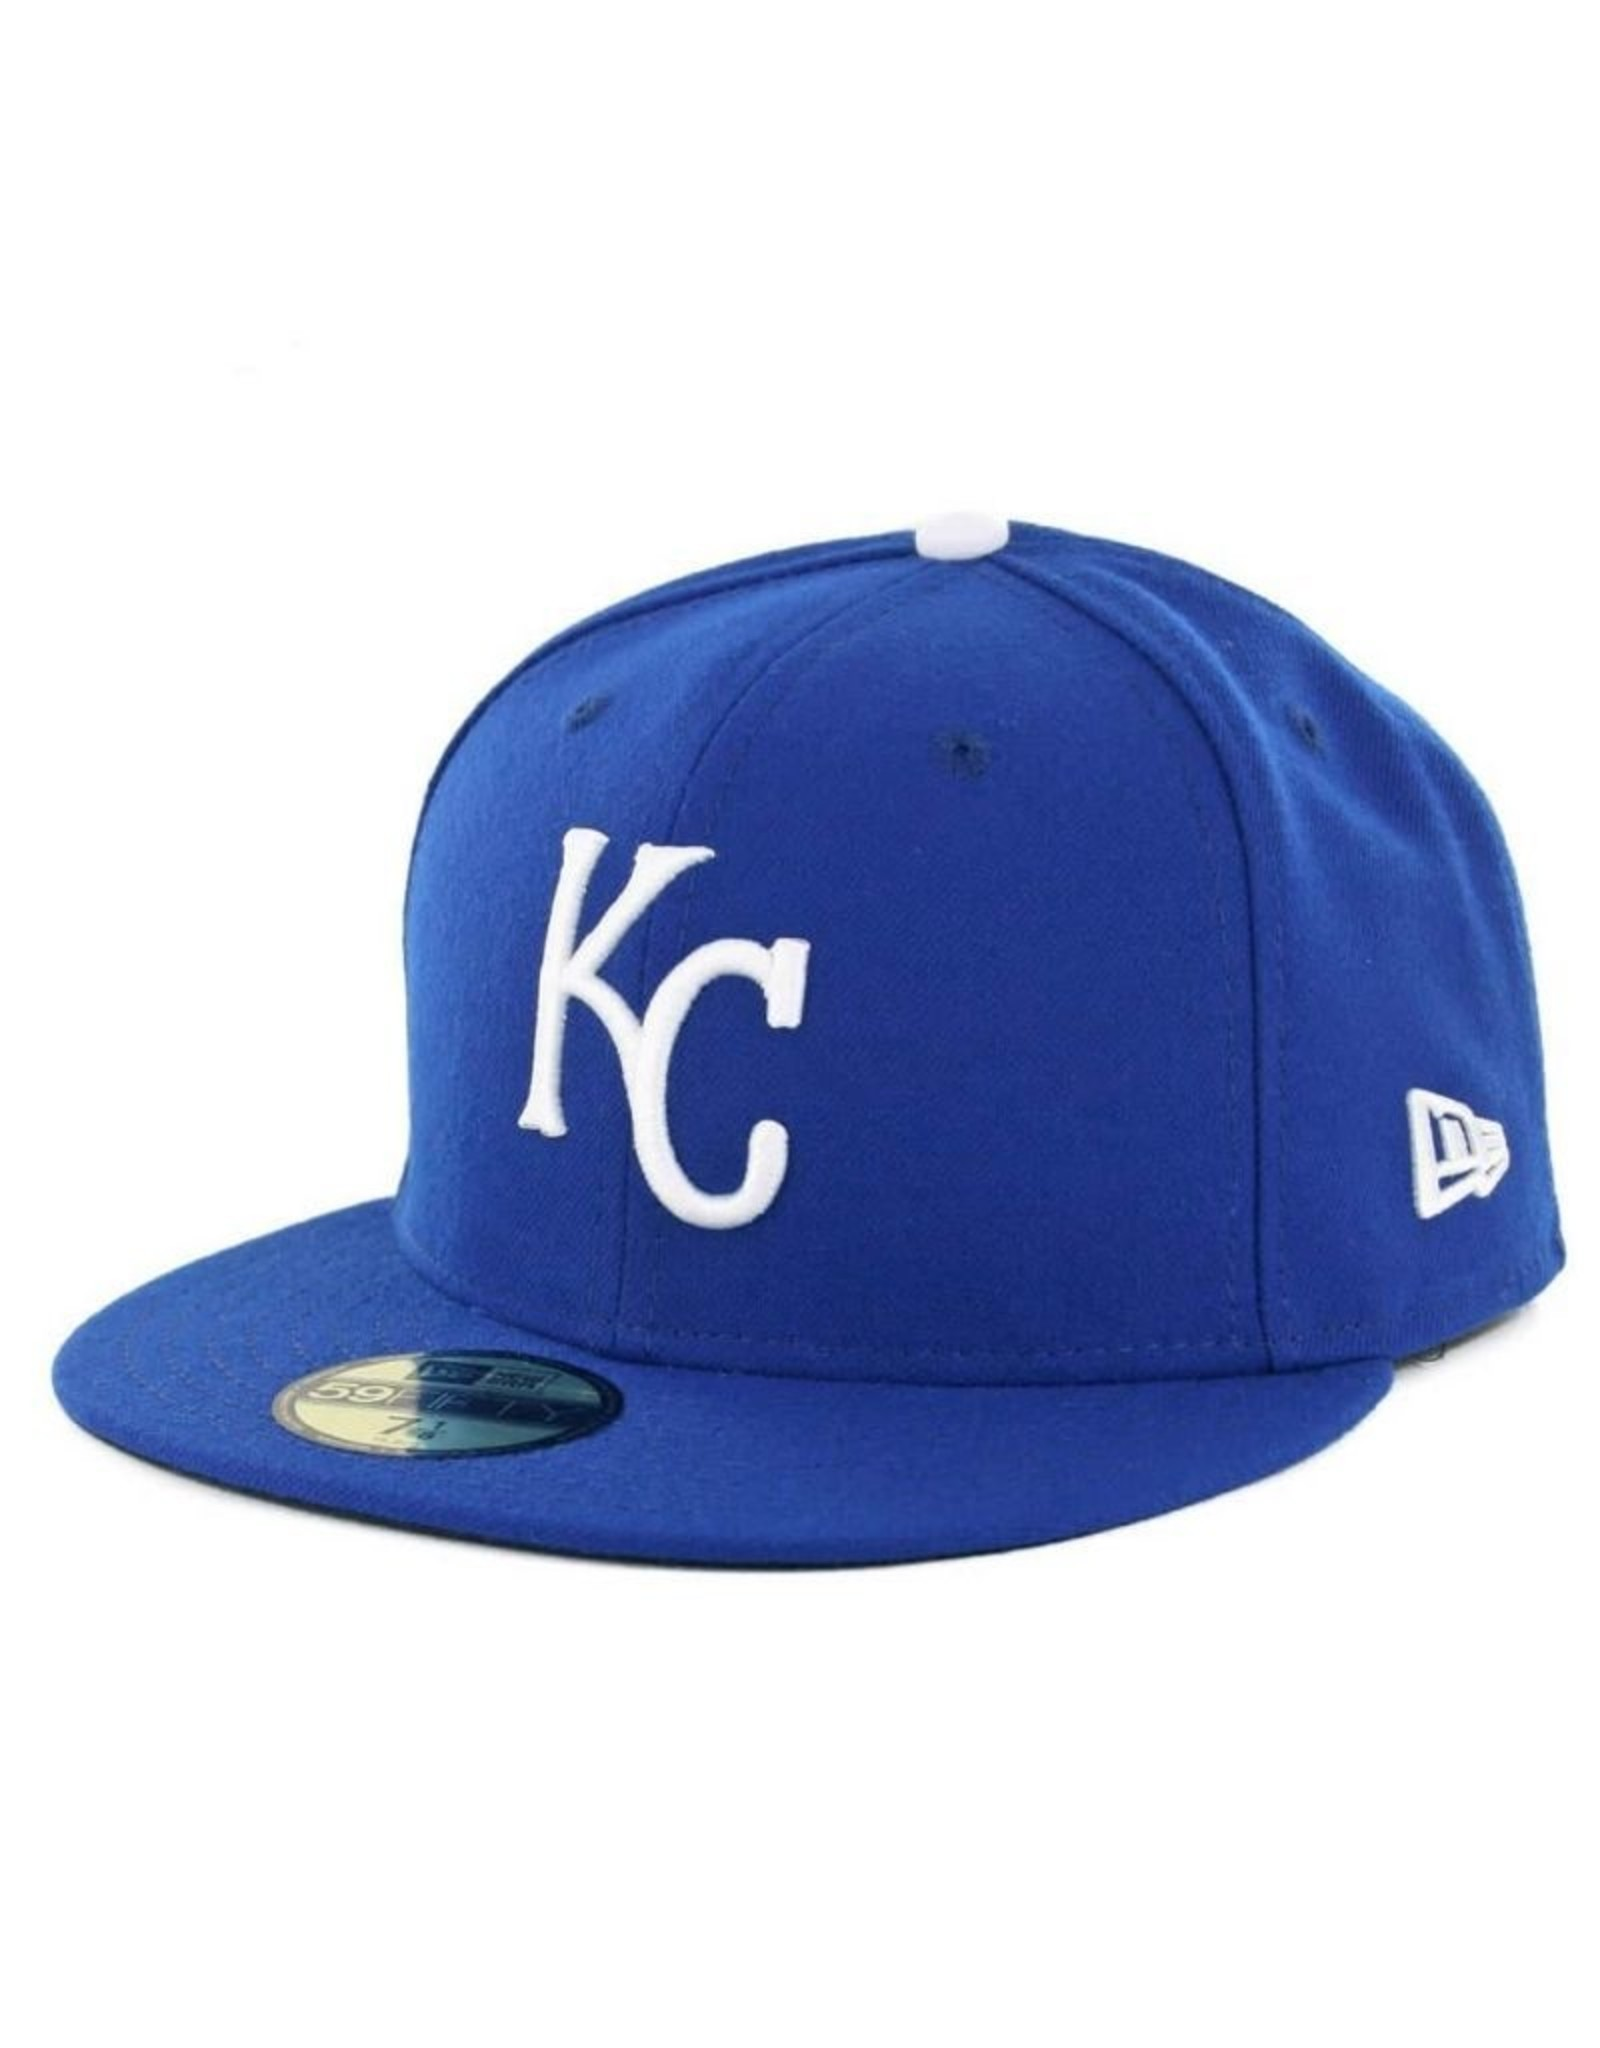 New Era On-Field Home Hat Kansas City Royals Royal/White